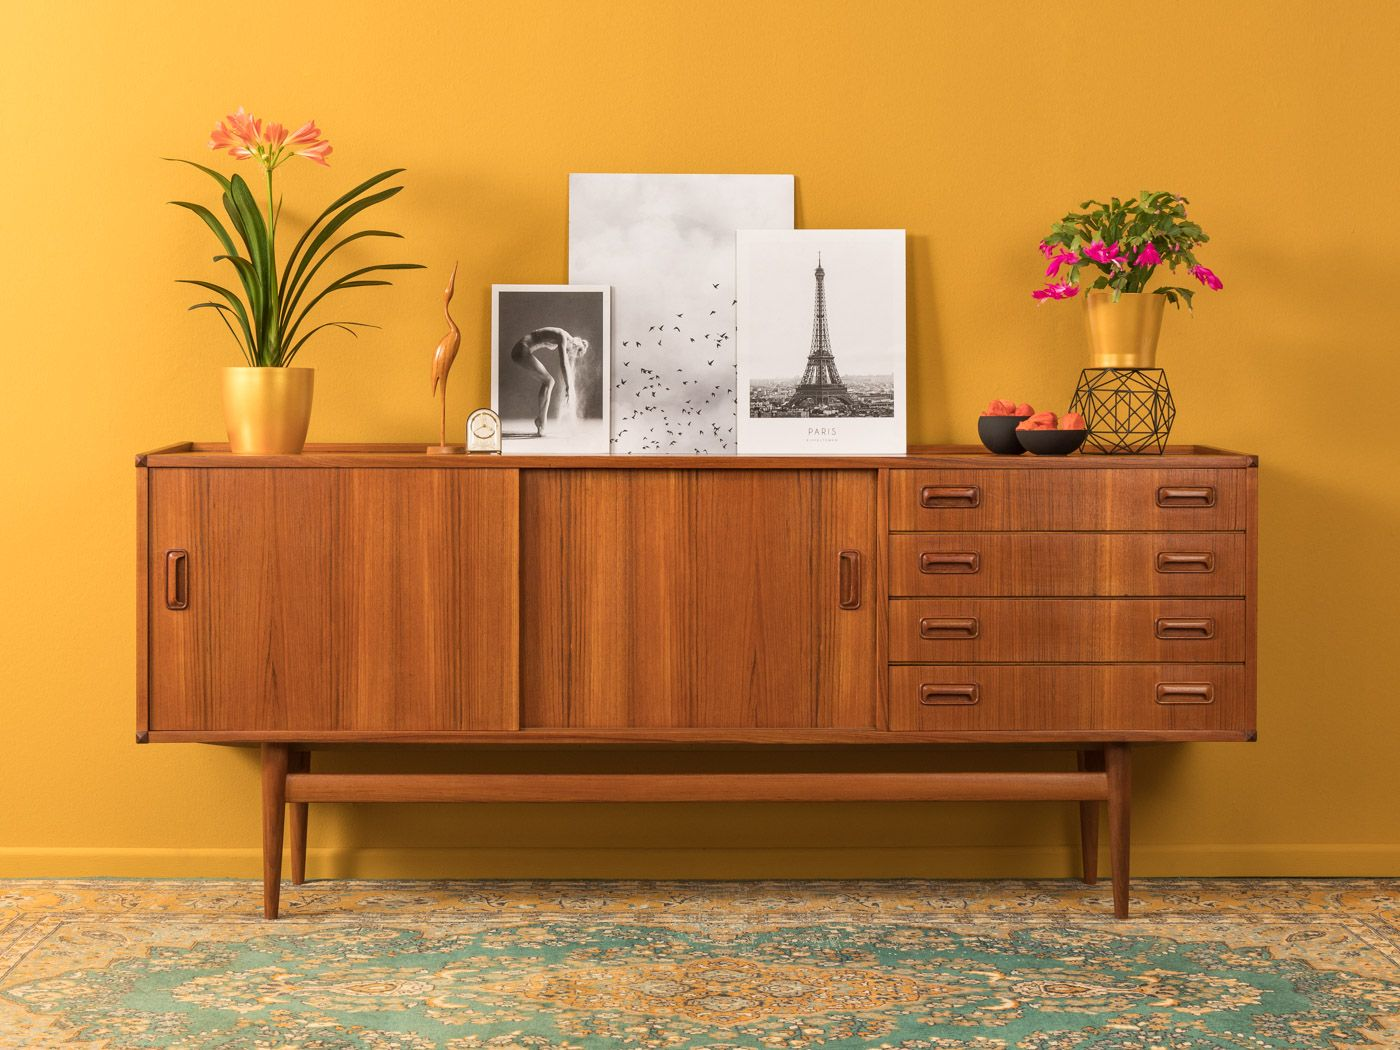 Vintage Sideboard By Musterring 1950s Design Market